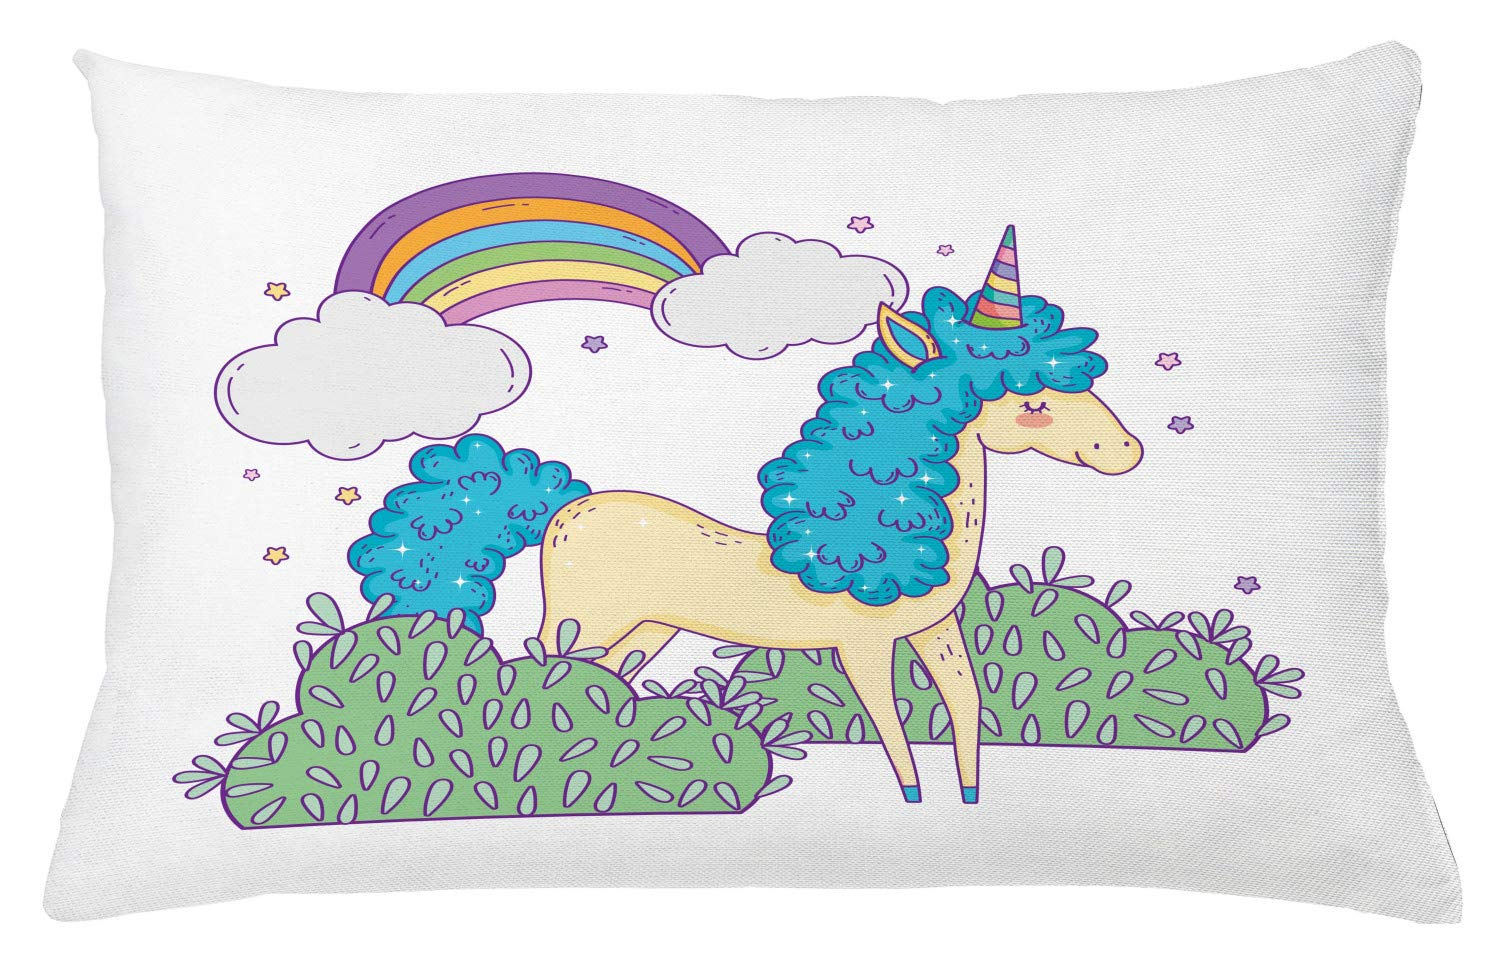 Lunarable Rainbow Throw Pillow Cushion Cover, Hand Drawn Doodle Funny Little Unicorn with Clouds and Bushes Nursery Themed Art, Decorative Accent Pillow Case, 26'' X 16'', Multicolor